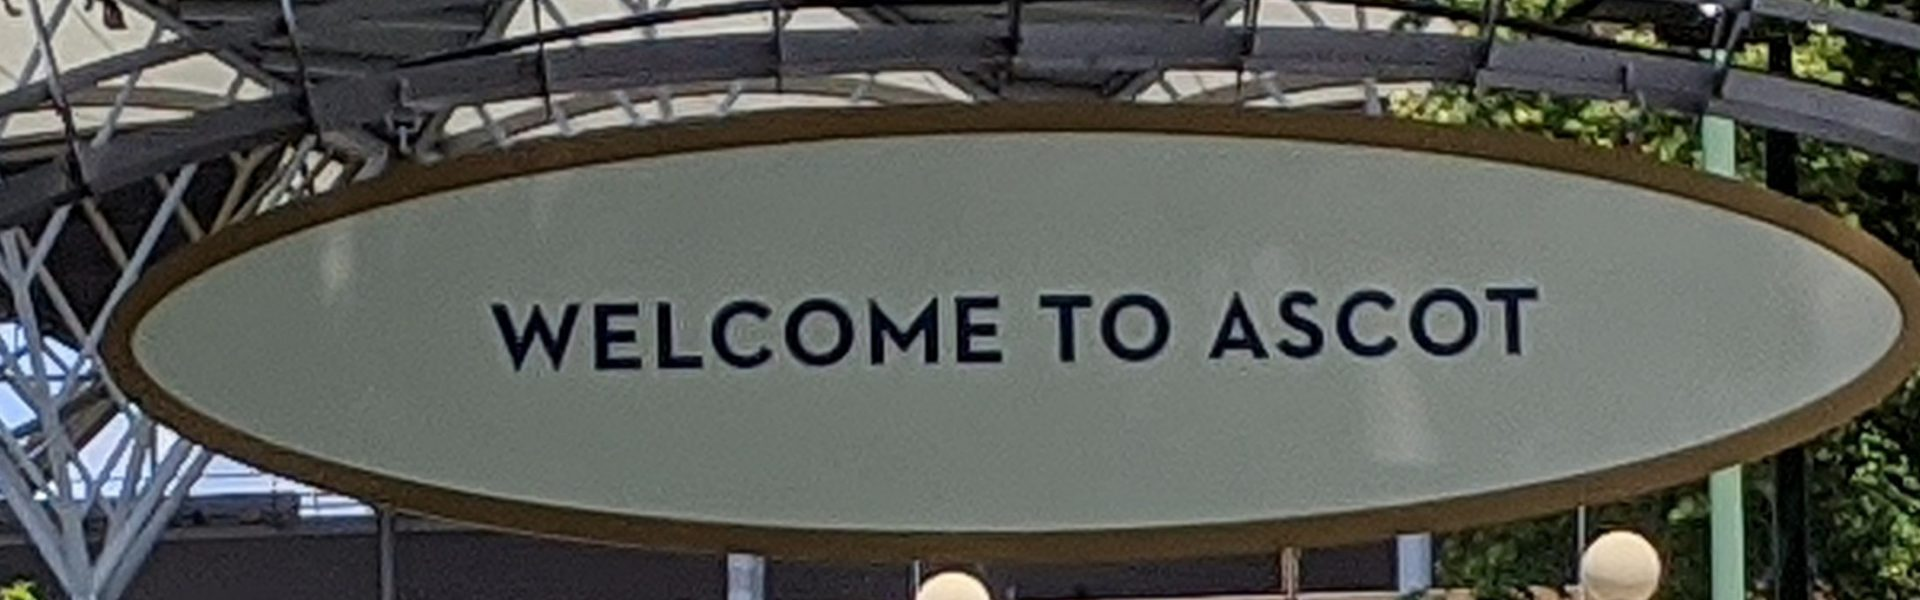 Welcome to Ascot Image